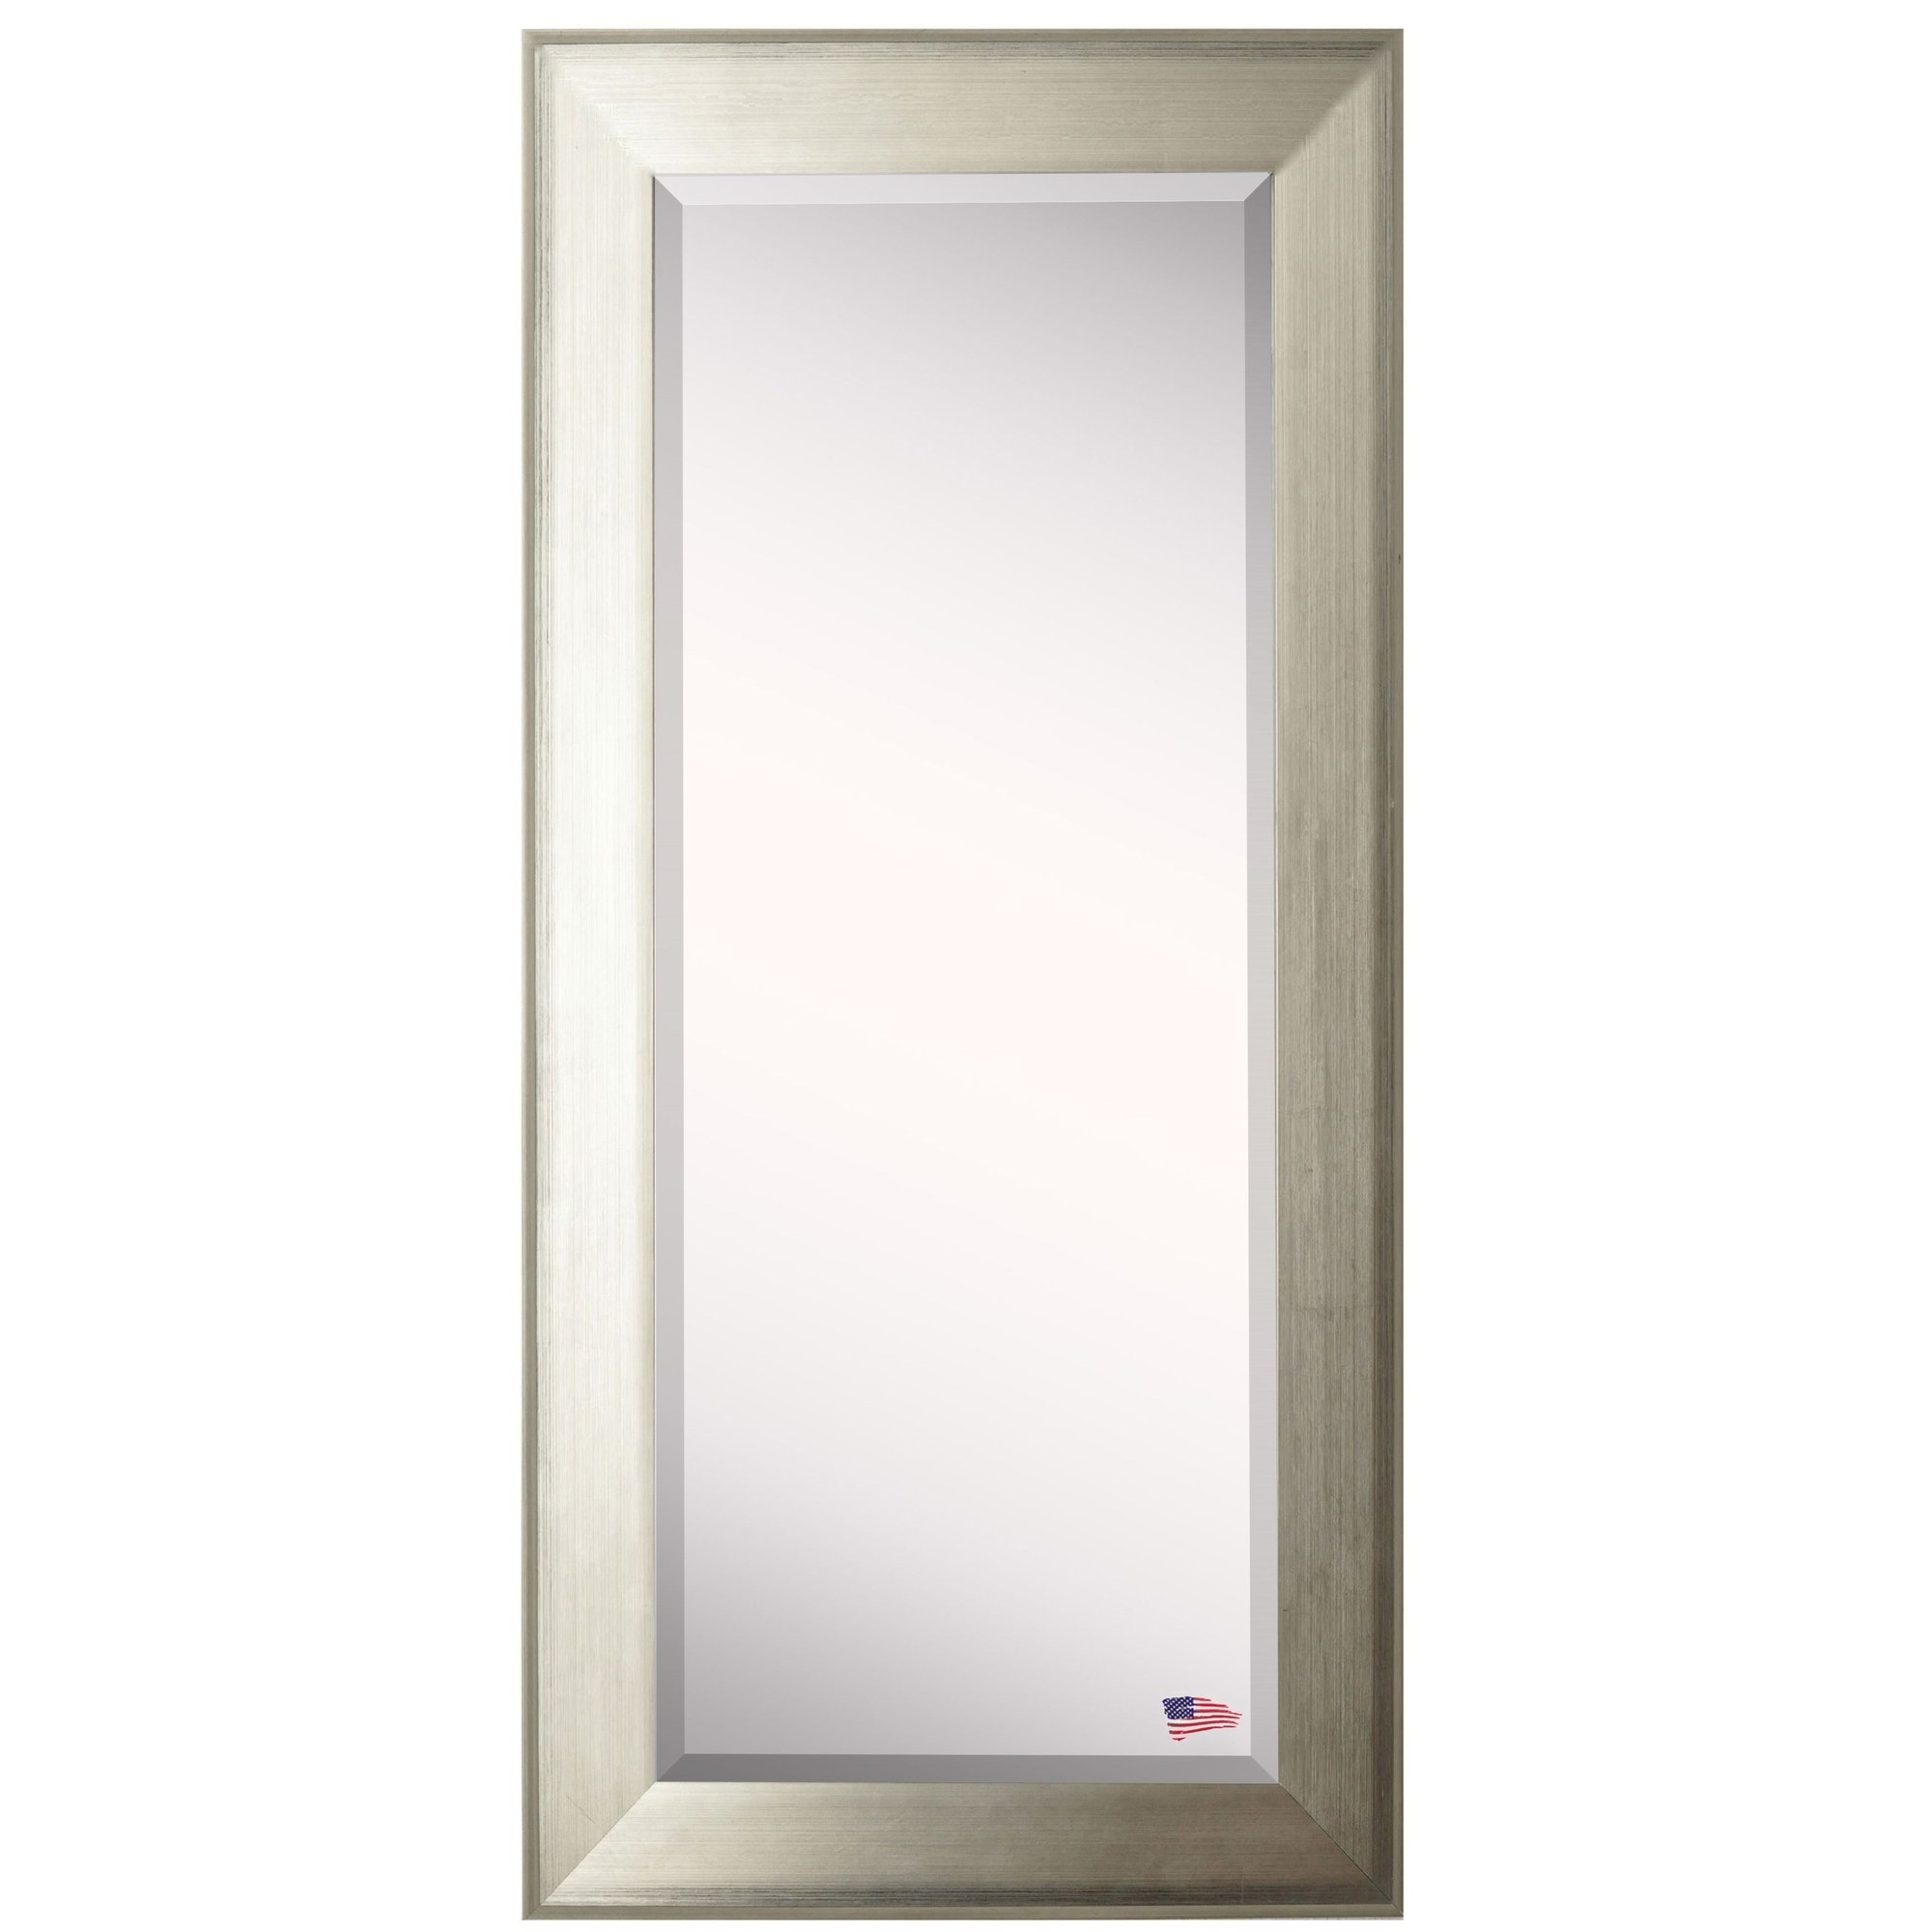 Wade Logan Brushed Silver Tone Full Length Beveled Body Mirror Within Full Length Silver Mirror (Image 15 of 15)